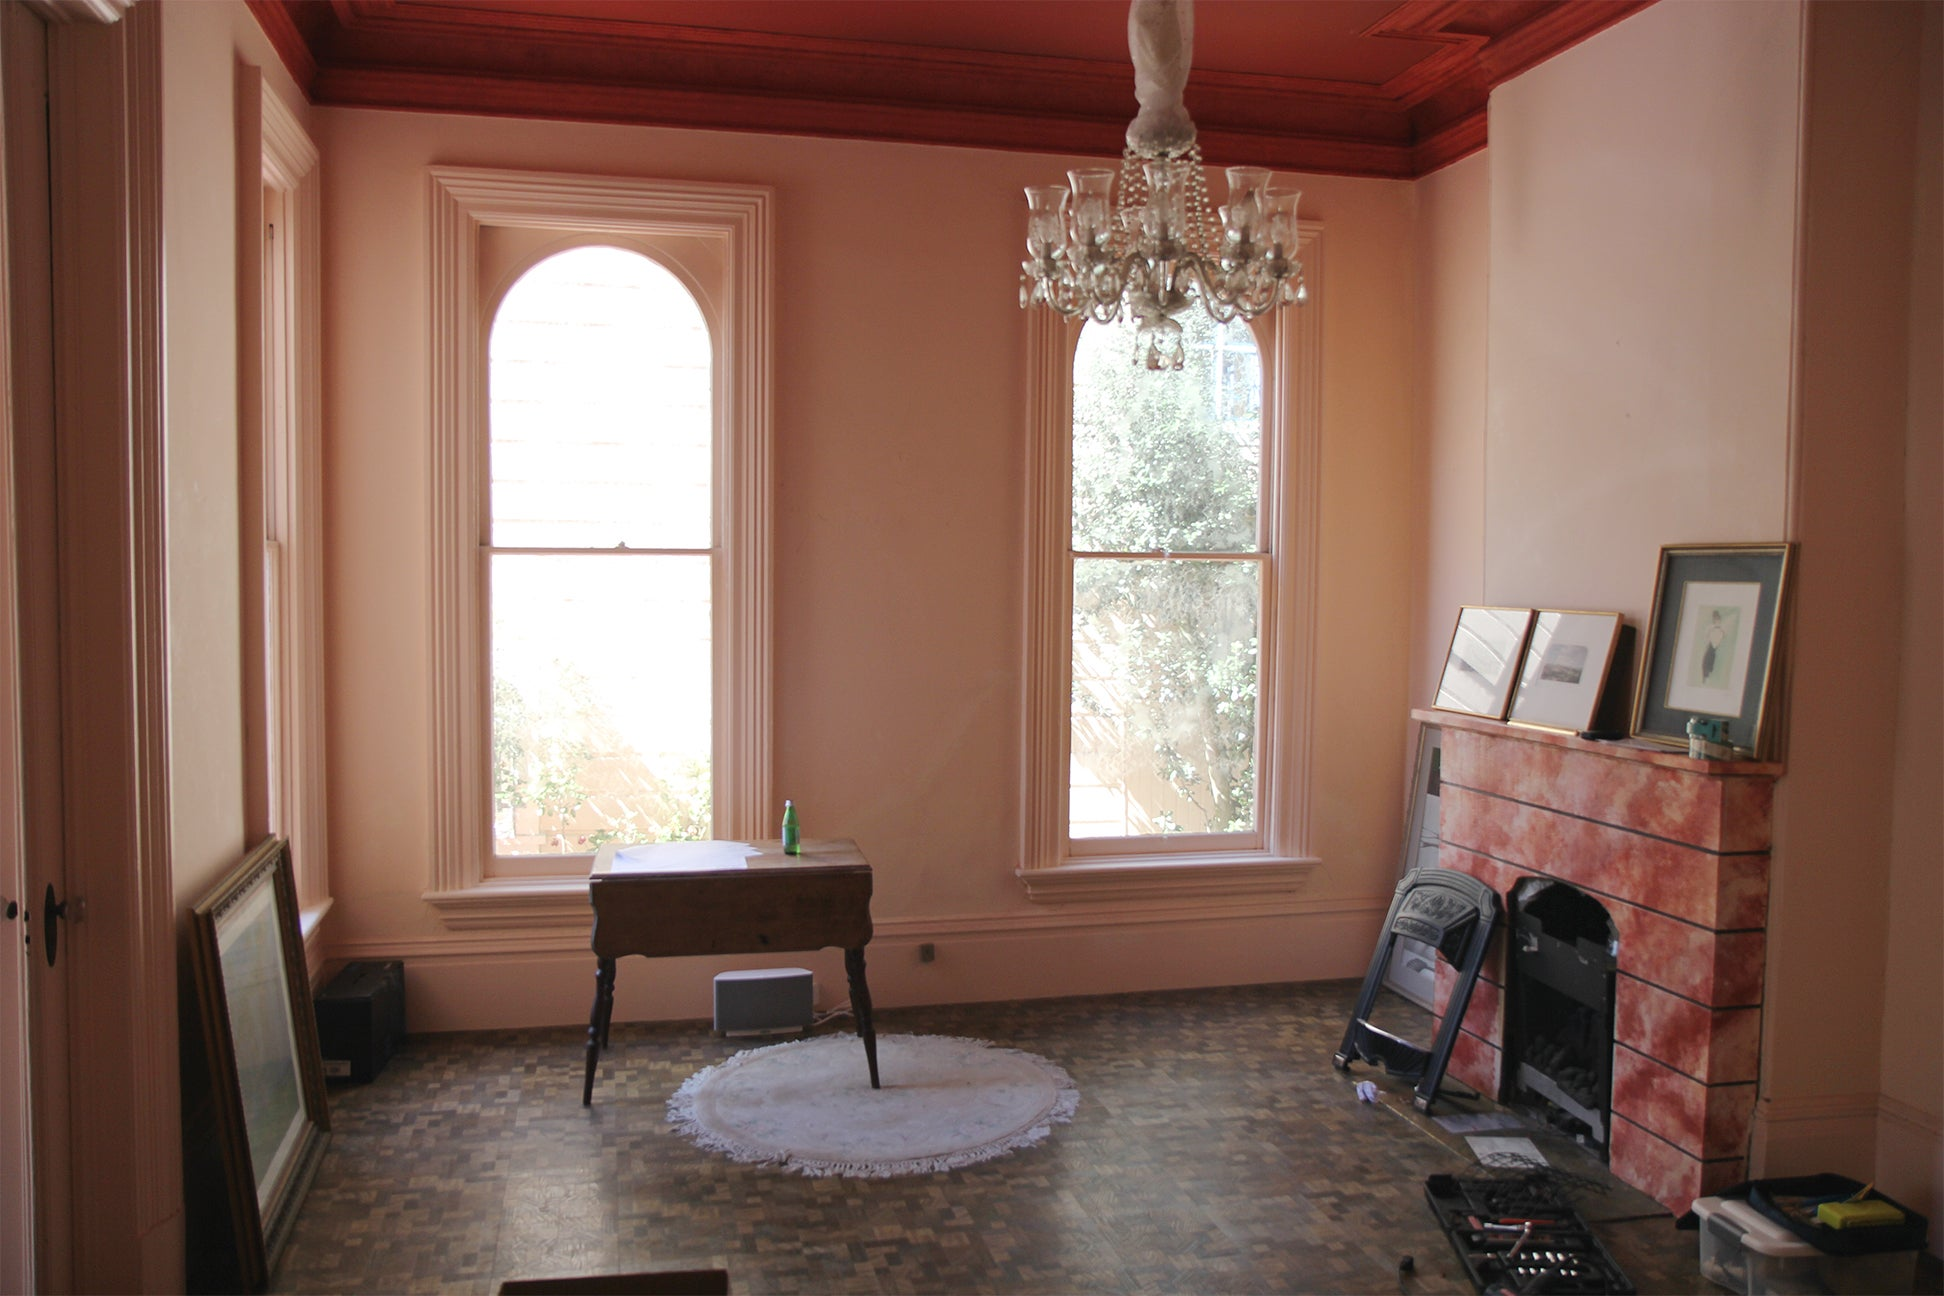 Victorian home before renovation